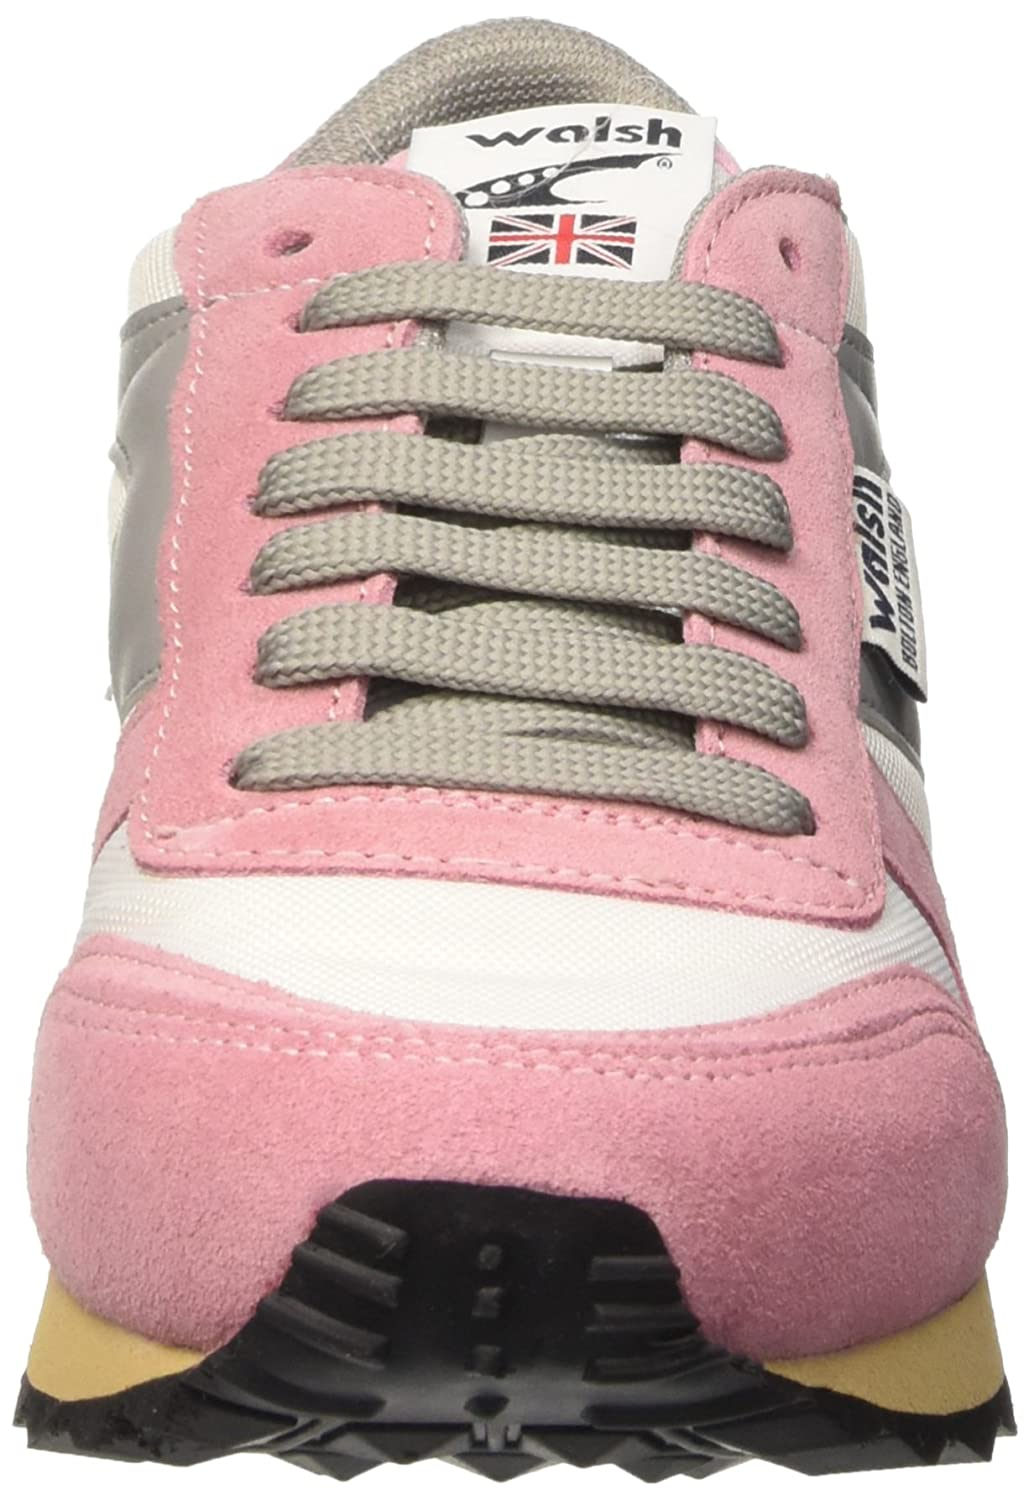 V10BWRSGG - Gymnastique, Multicolore (Bright Blanc/Rose Shadow), Taille 36Walsh